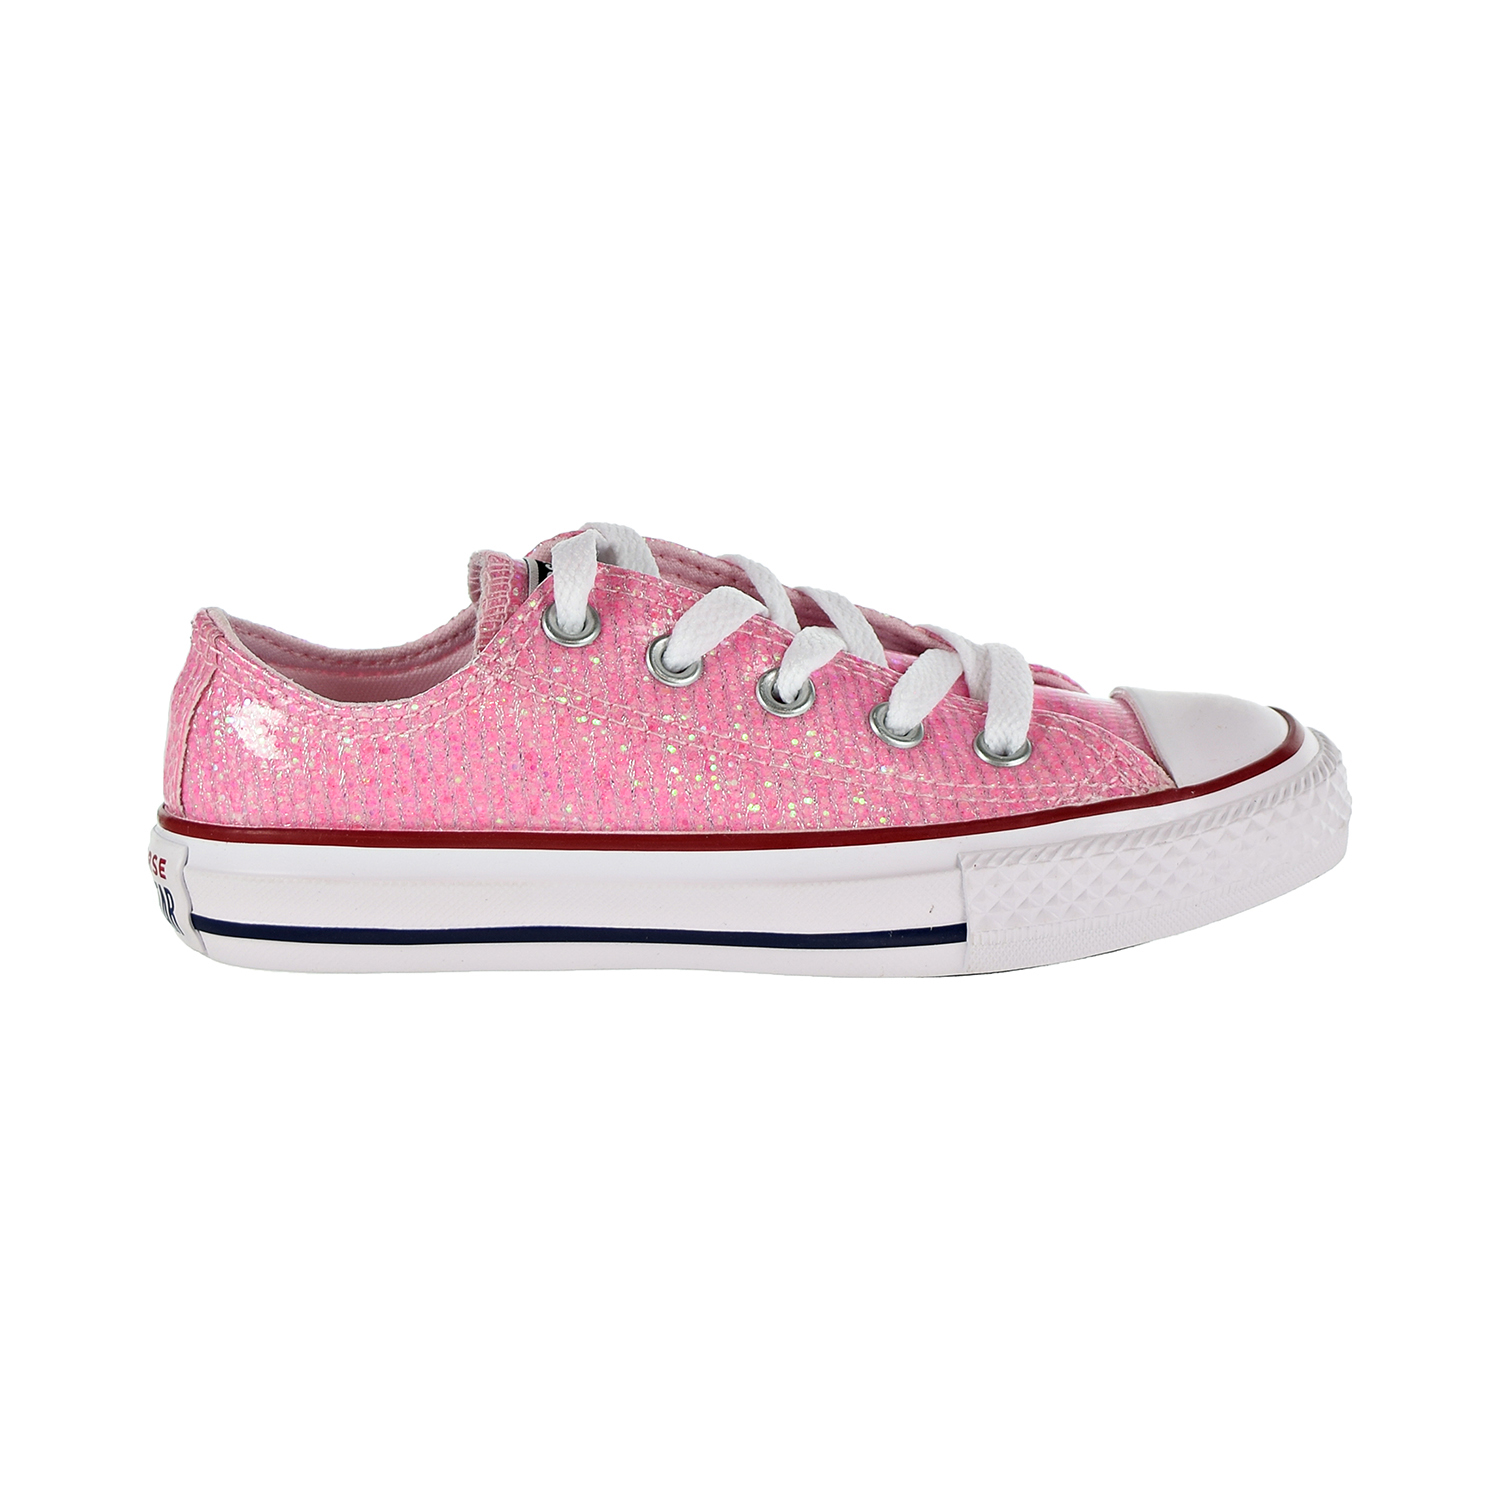 6893438c1bee Details about Converse Chuck Taylor All Star Ox Kids  Shoes Pink Foam  663628C